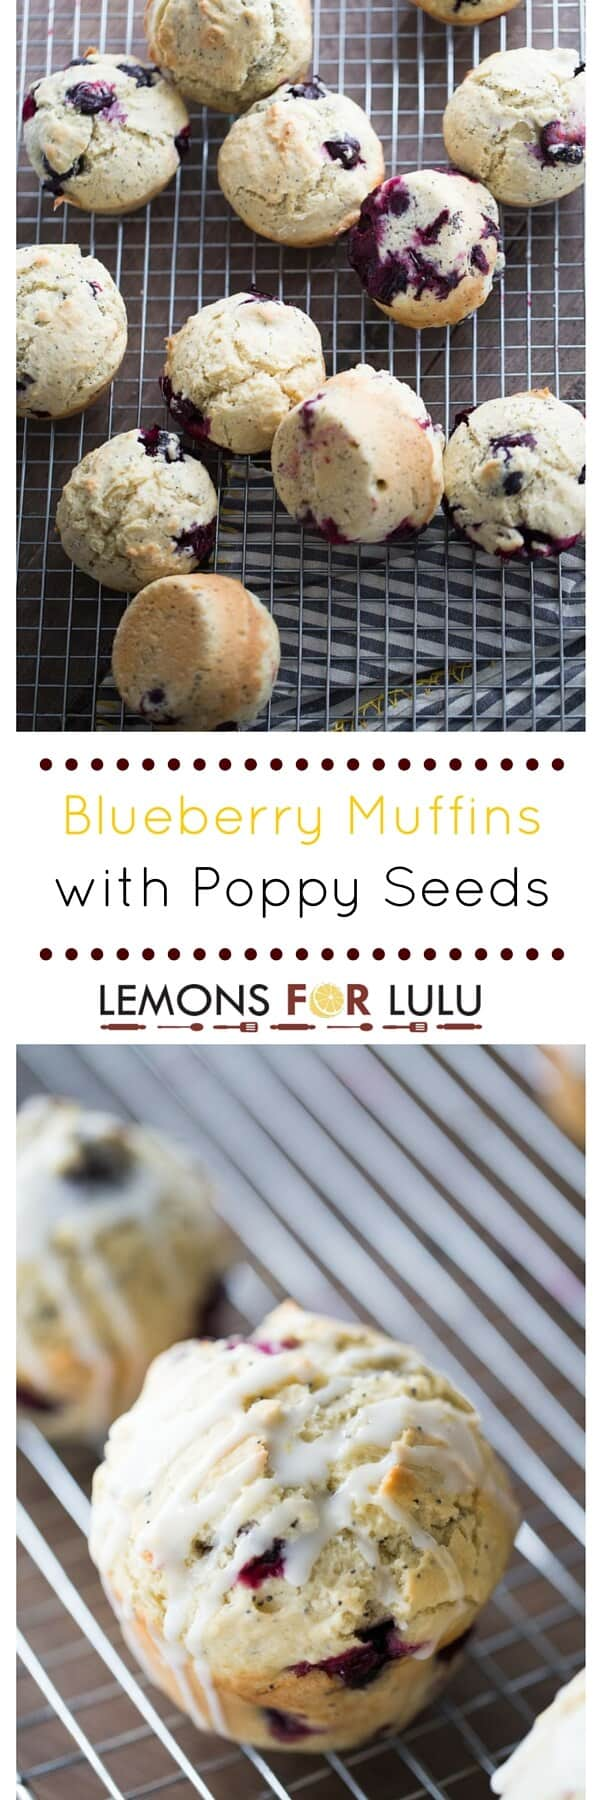 Breakfast will be the stand out meal when these blueberry muffins are served! These soft and tender muffins are speckled with poppy seeds and drizzled with a tangy lemon glaze. The combination of sweet and tart bursts through in each bite!